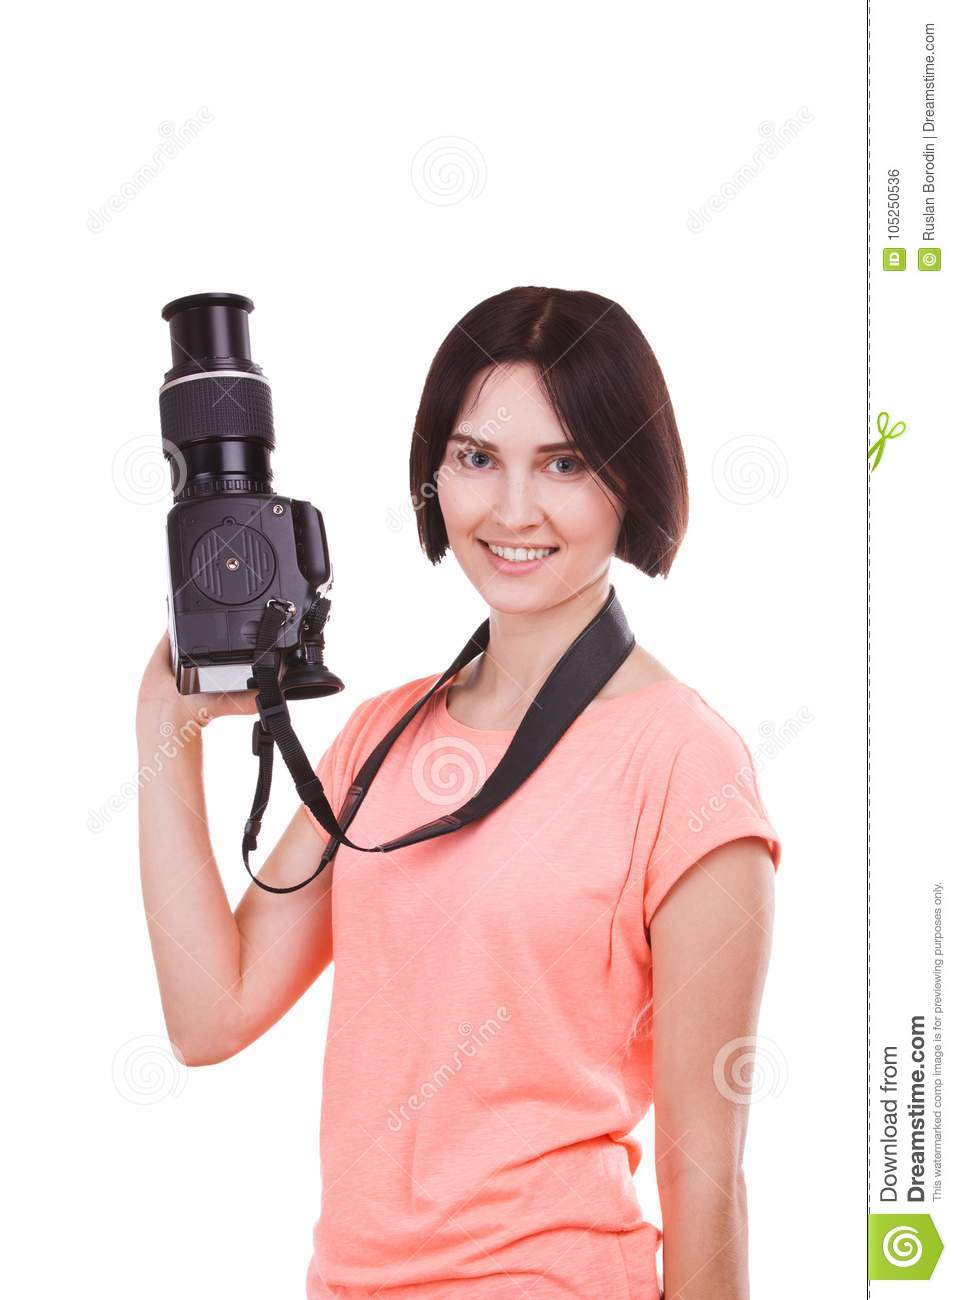 A girl is holding a camera in her hand and looking to the side on a white background